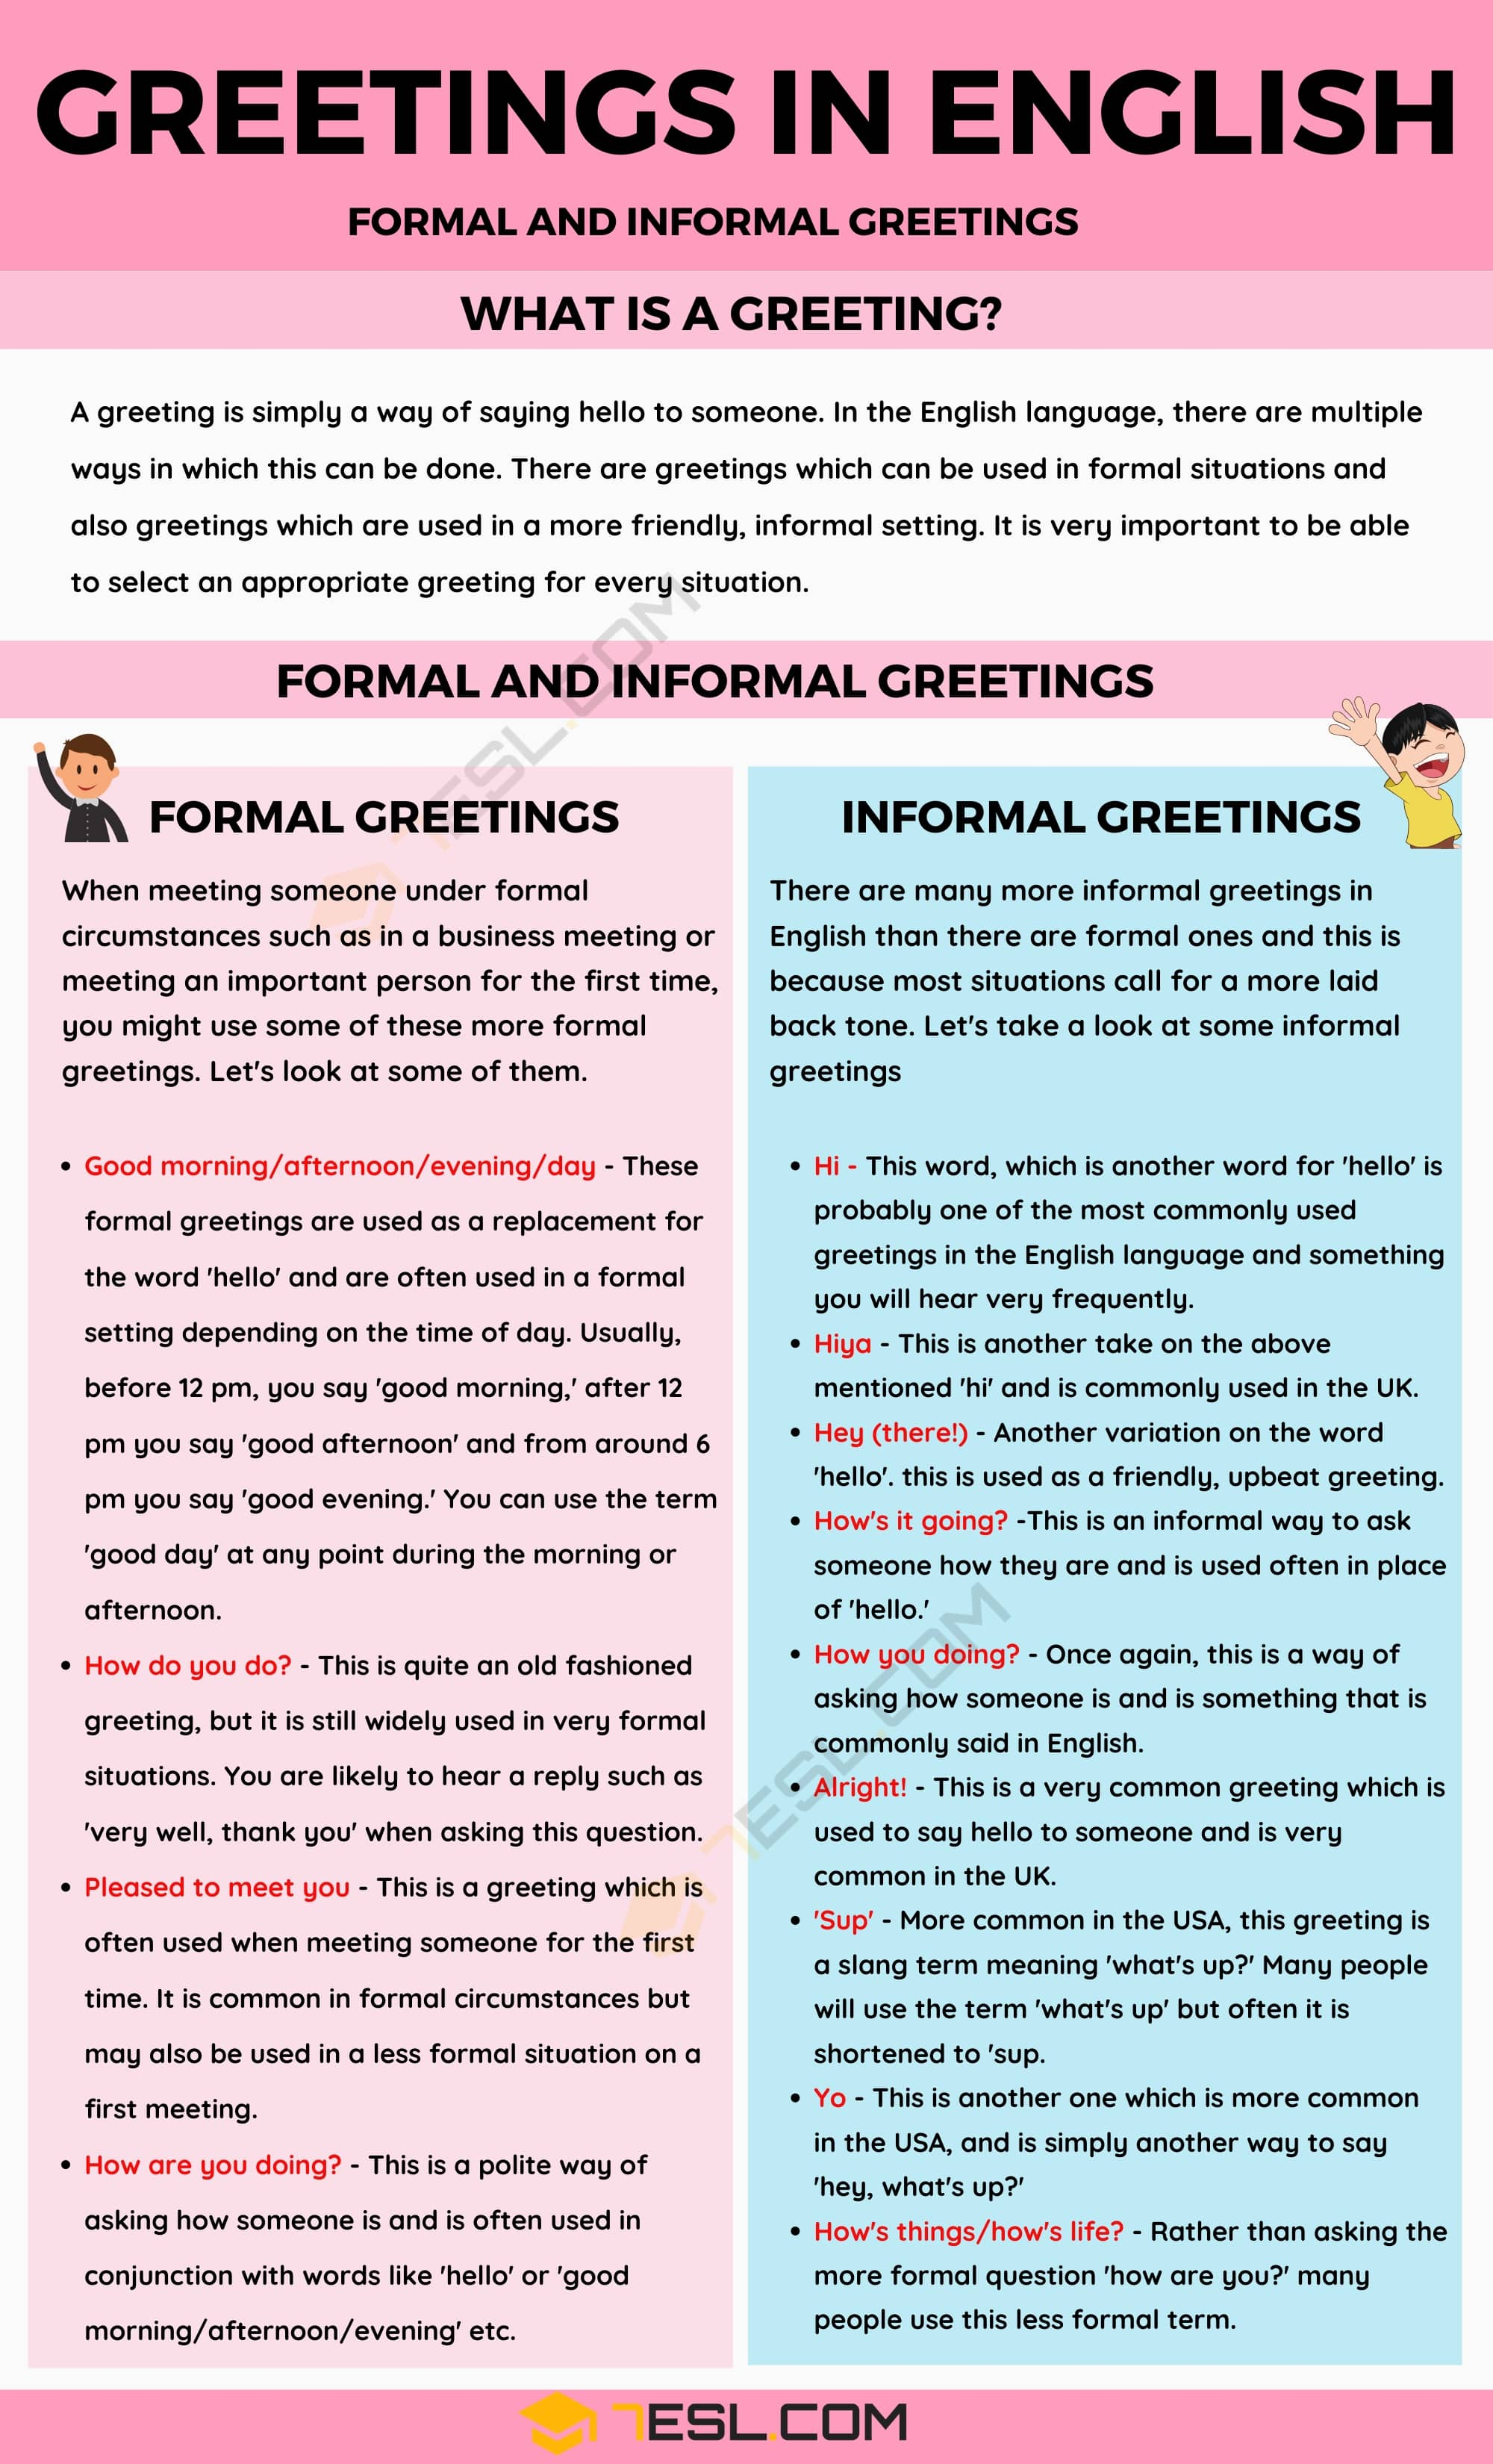 Greetings: Formal and Informal Greetings in English